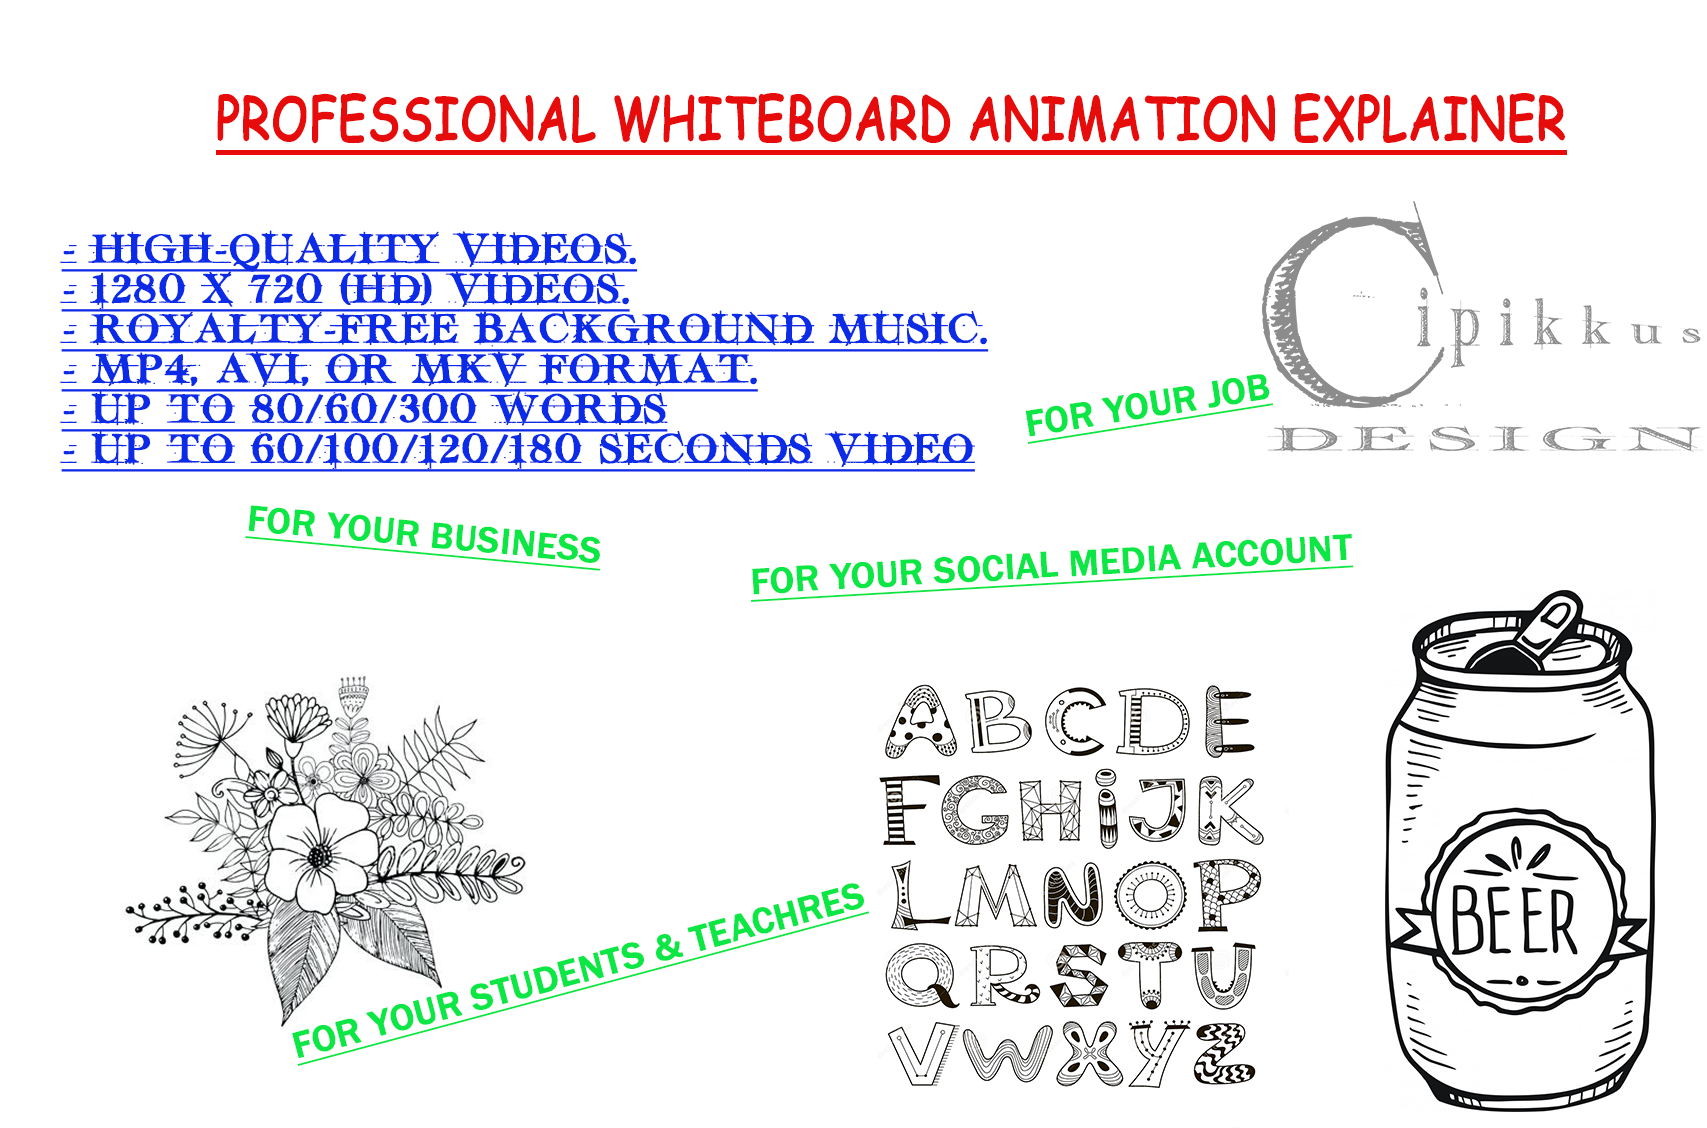 I will create PROFESSIONAL WHITEBOARD ANIMATION and EXPLAINED VIDEO